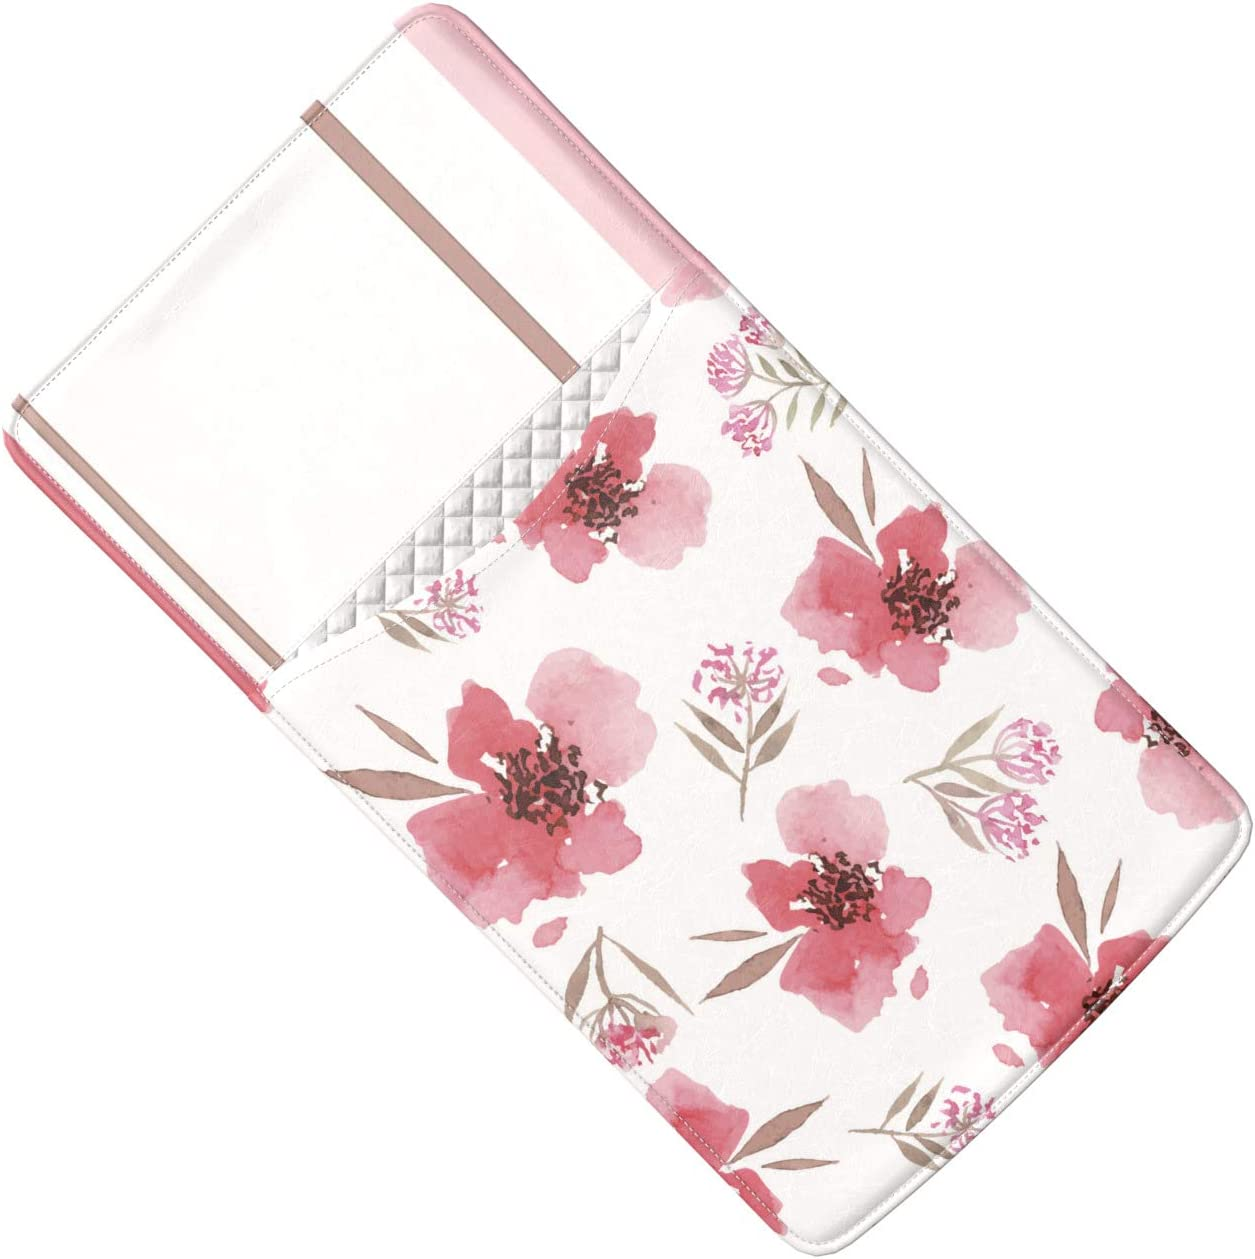 Lex Altern Tablet Sleeve Case for Samsung Galaxy Tab S6 S5e S4 S3 S2 A 10.5 A 10.1 A 8.0 A 9.7 E 9.6 2019 2018 2017 Floral Elephant Watercolor Peony Flowers Boho Blue Cover Protective Girl Printed